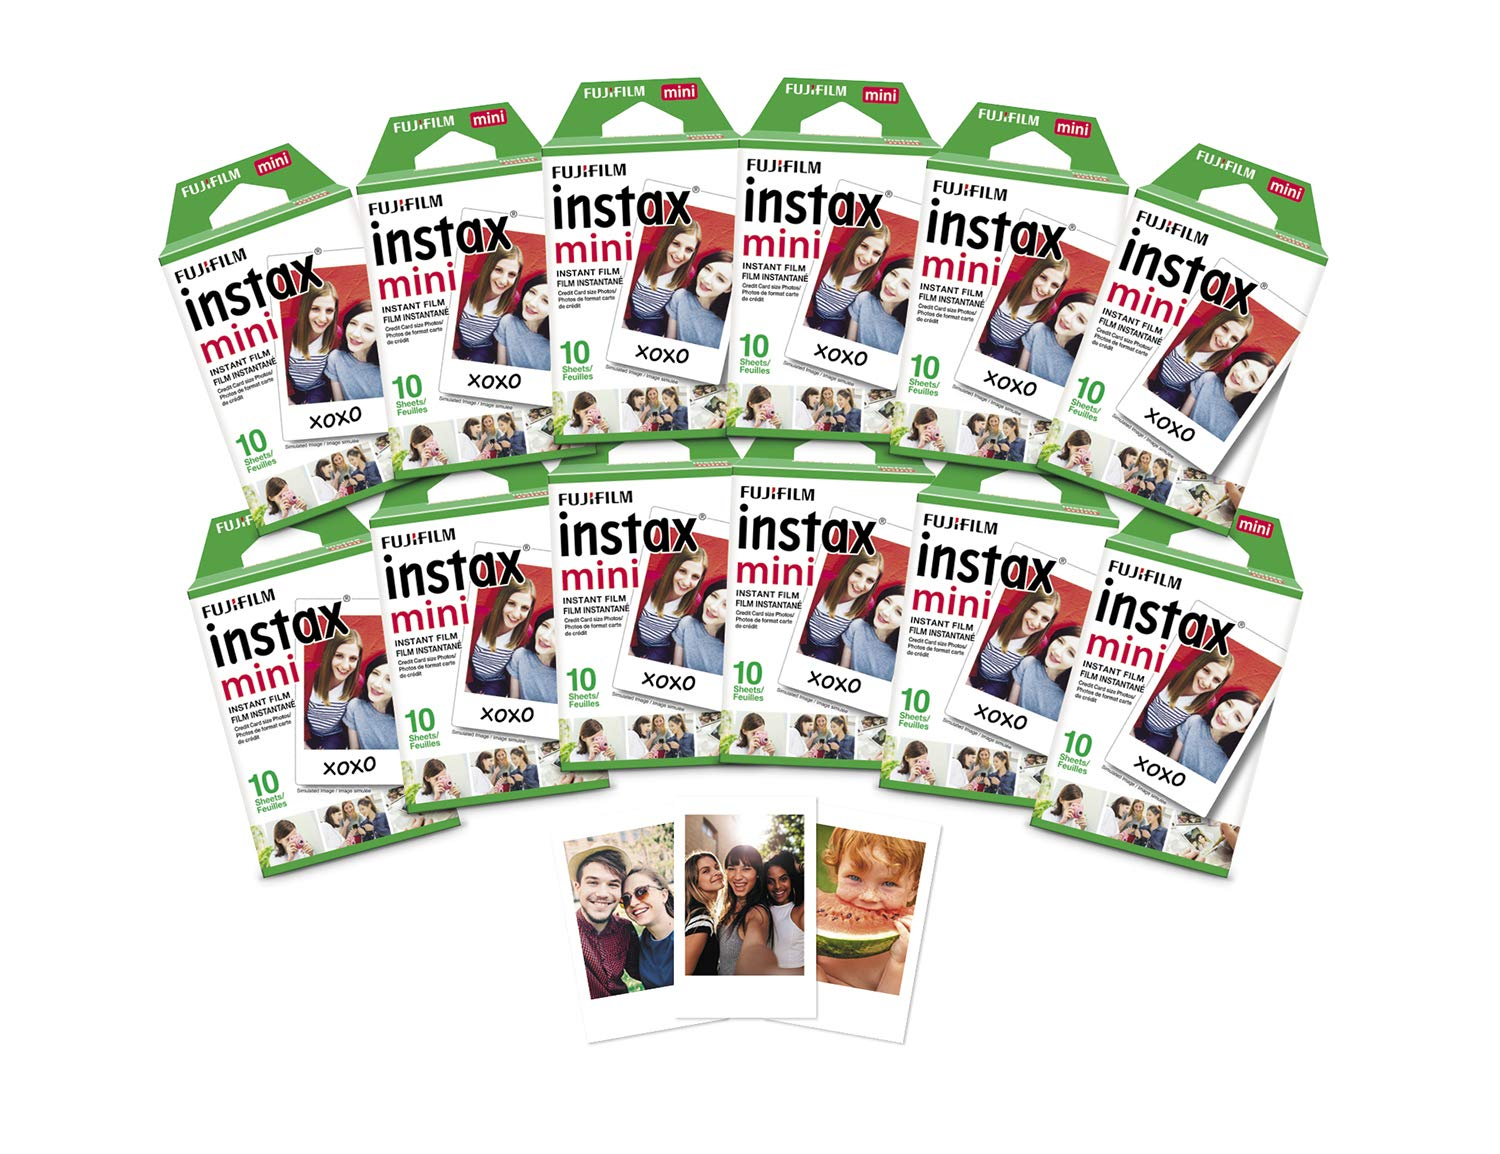 Fujifilm Instax Mini Instant Film Value Pack - 120 Photos by Fujifilm